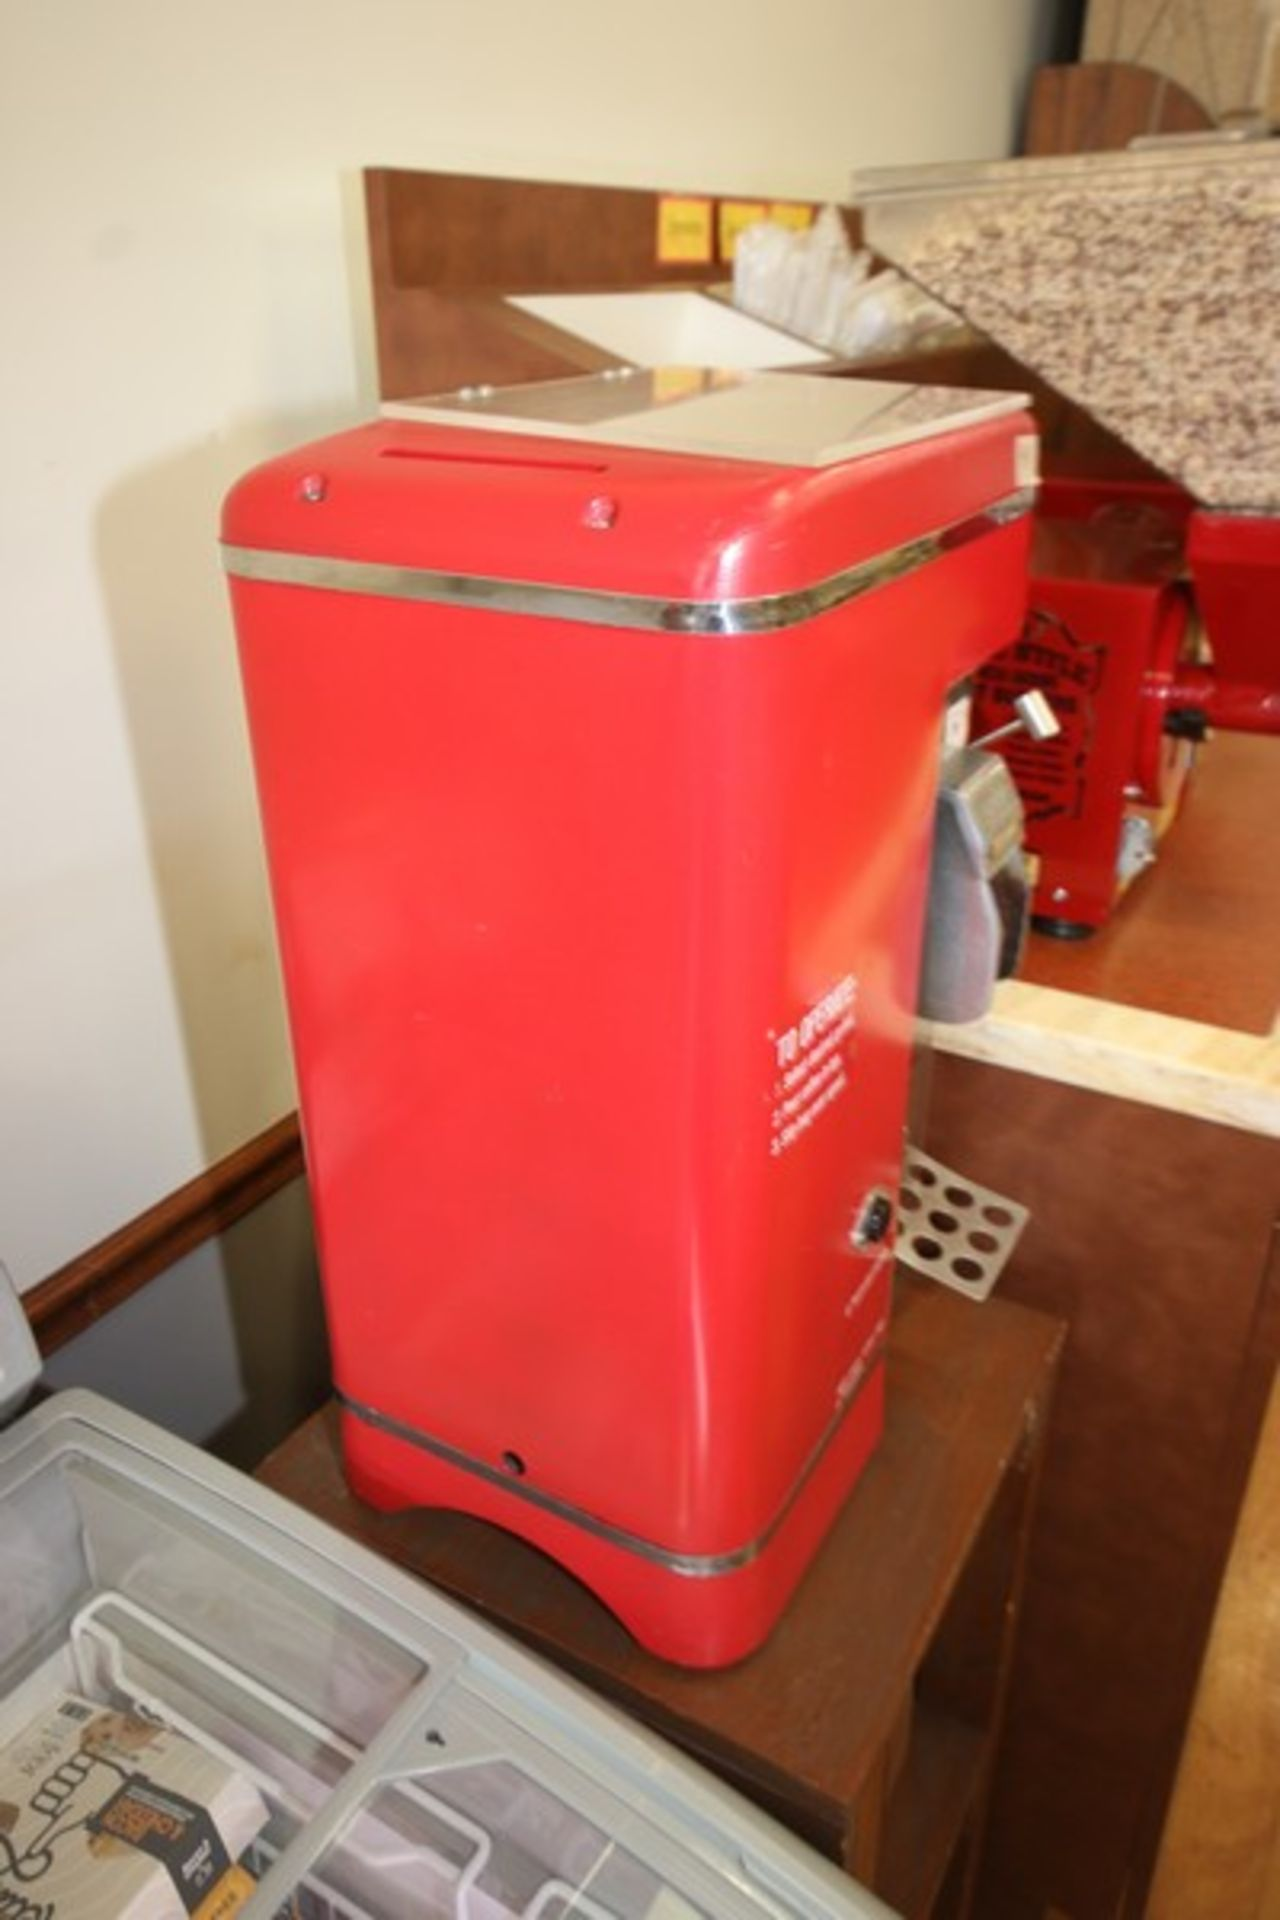 Grindmaster Coffee Grinder, M/N 500, S/N 33334, 115 Volts, with 1/3 hp Motor (Located in McMurray, - Image 2 of 4